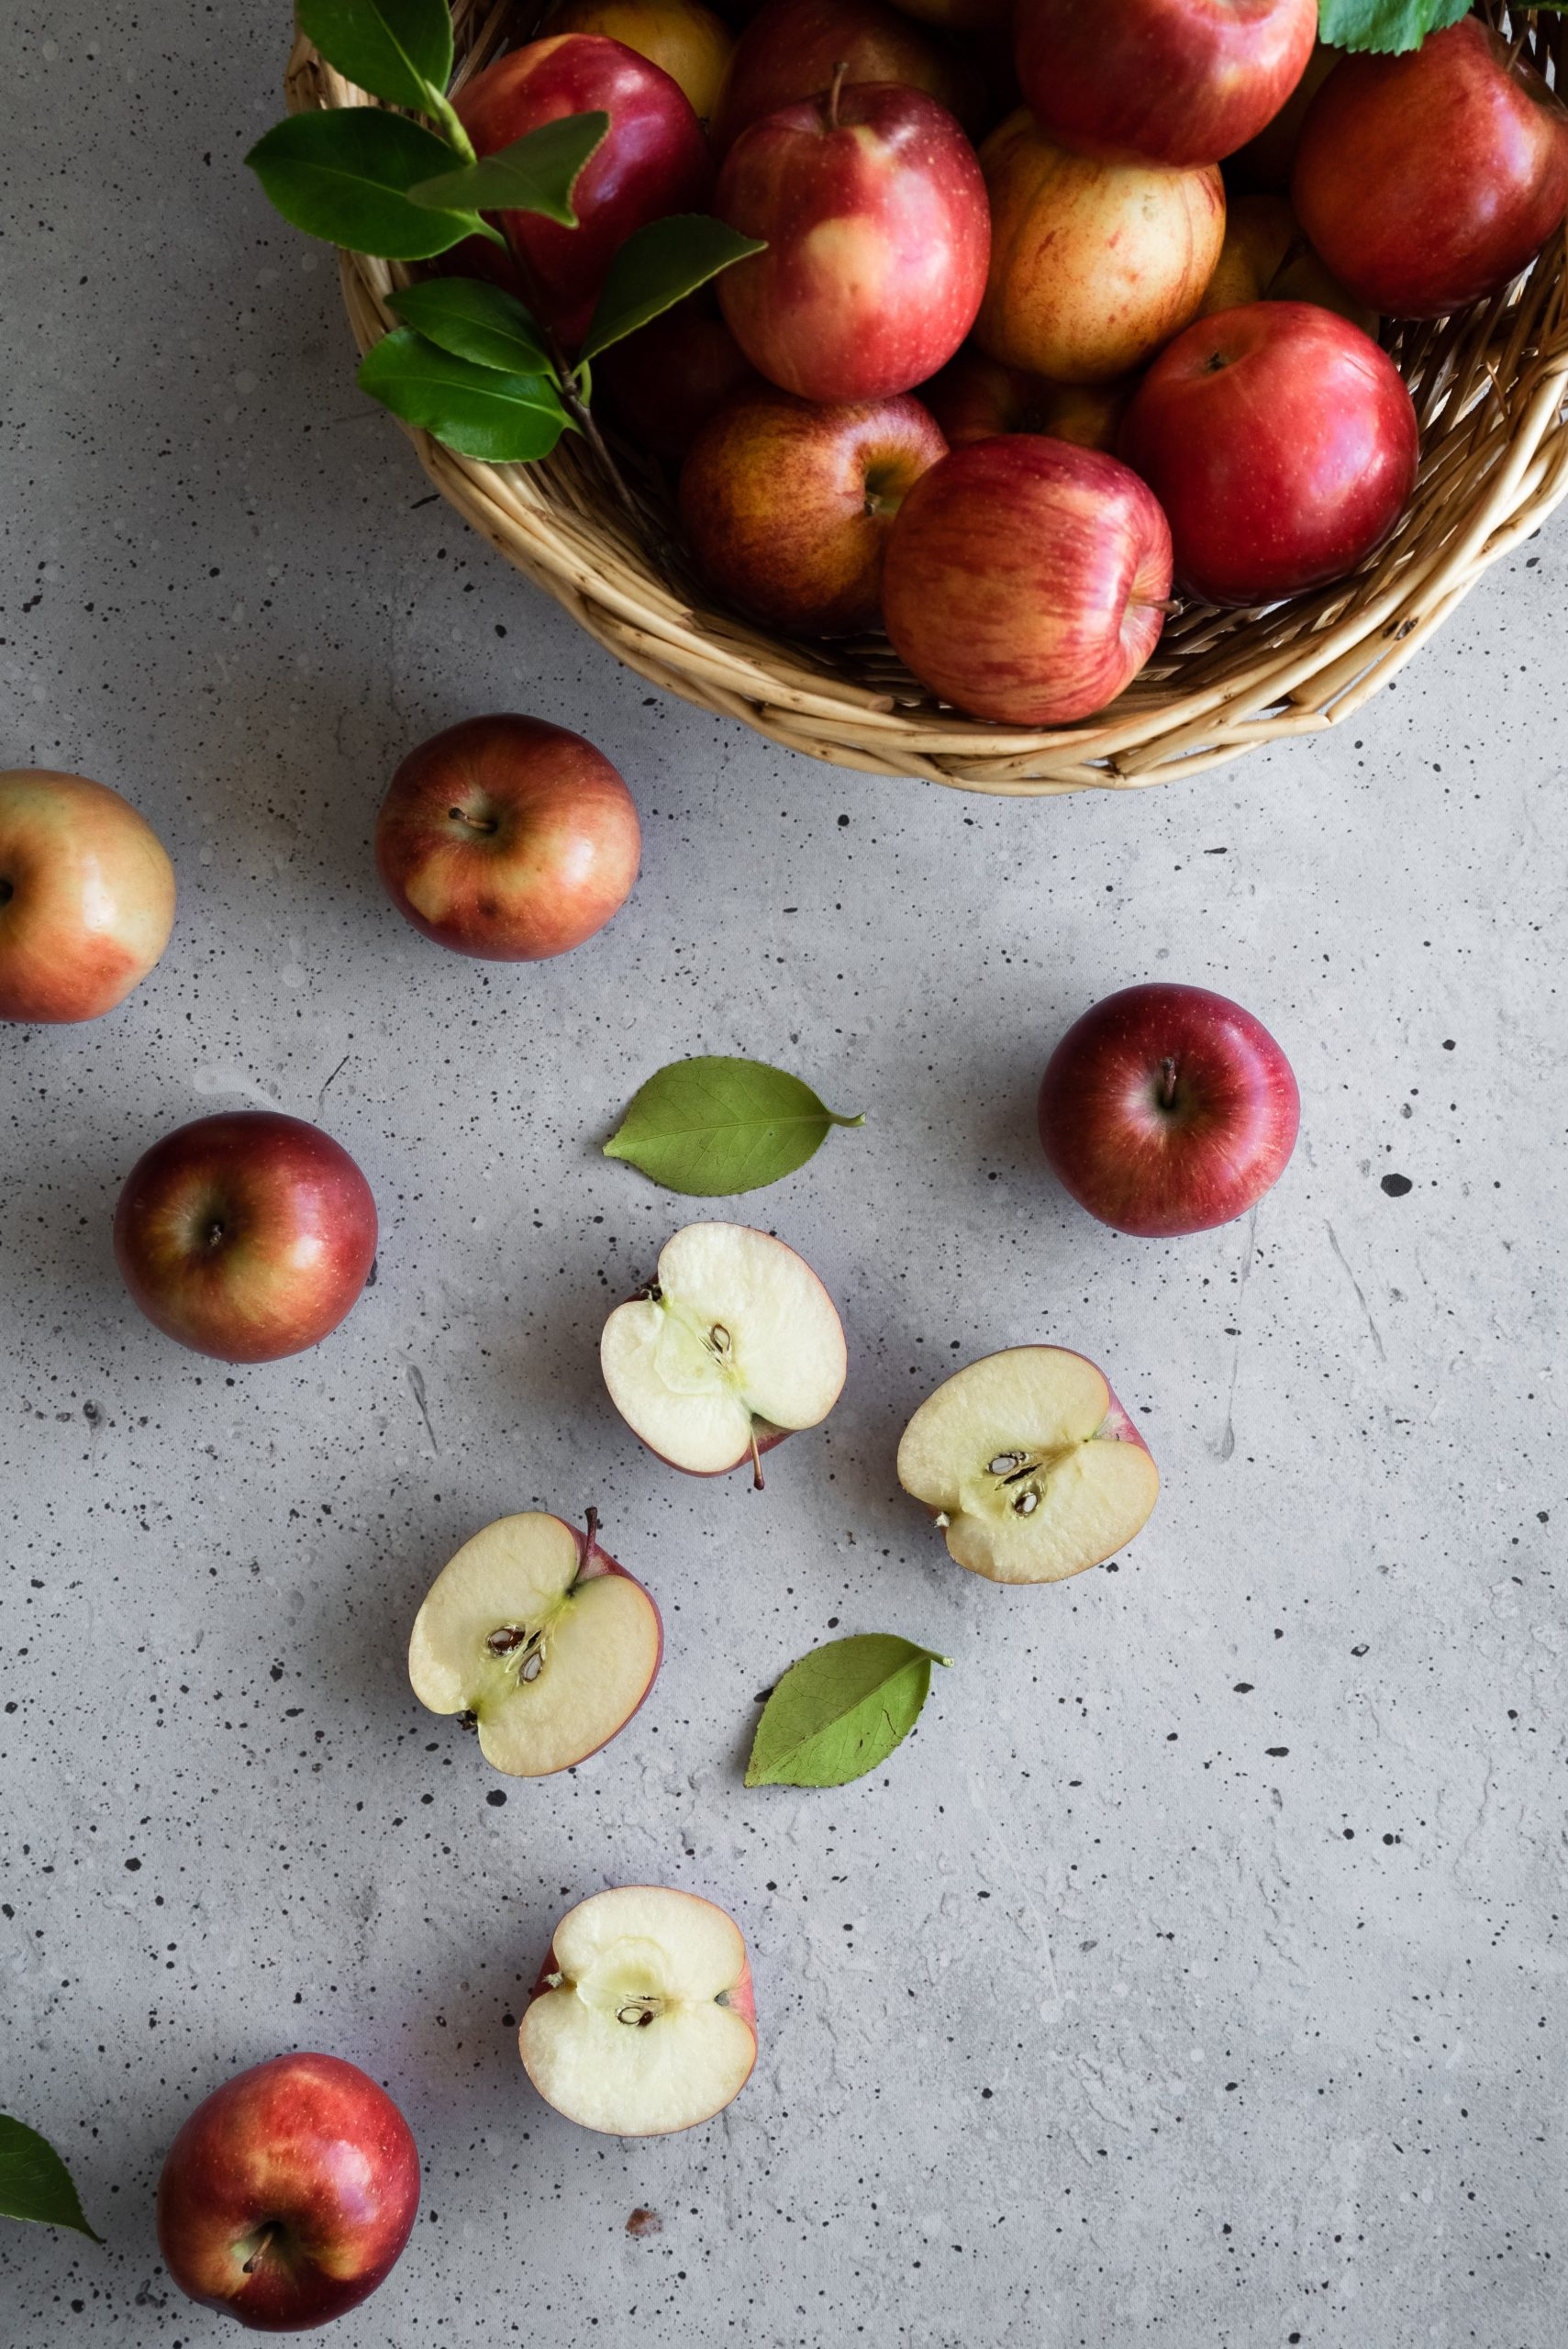 overhead image of a basket of red apples, apple halves and leaves on a grey surface.